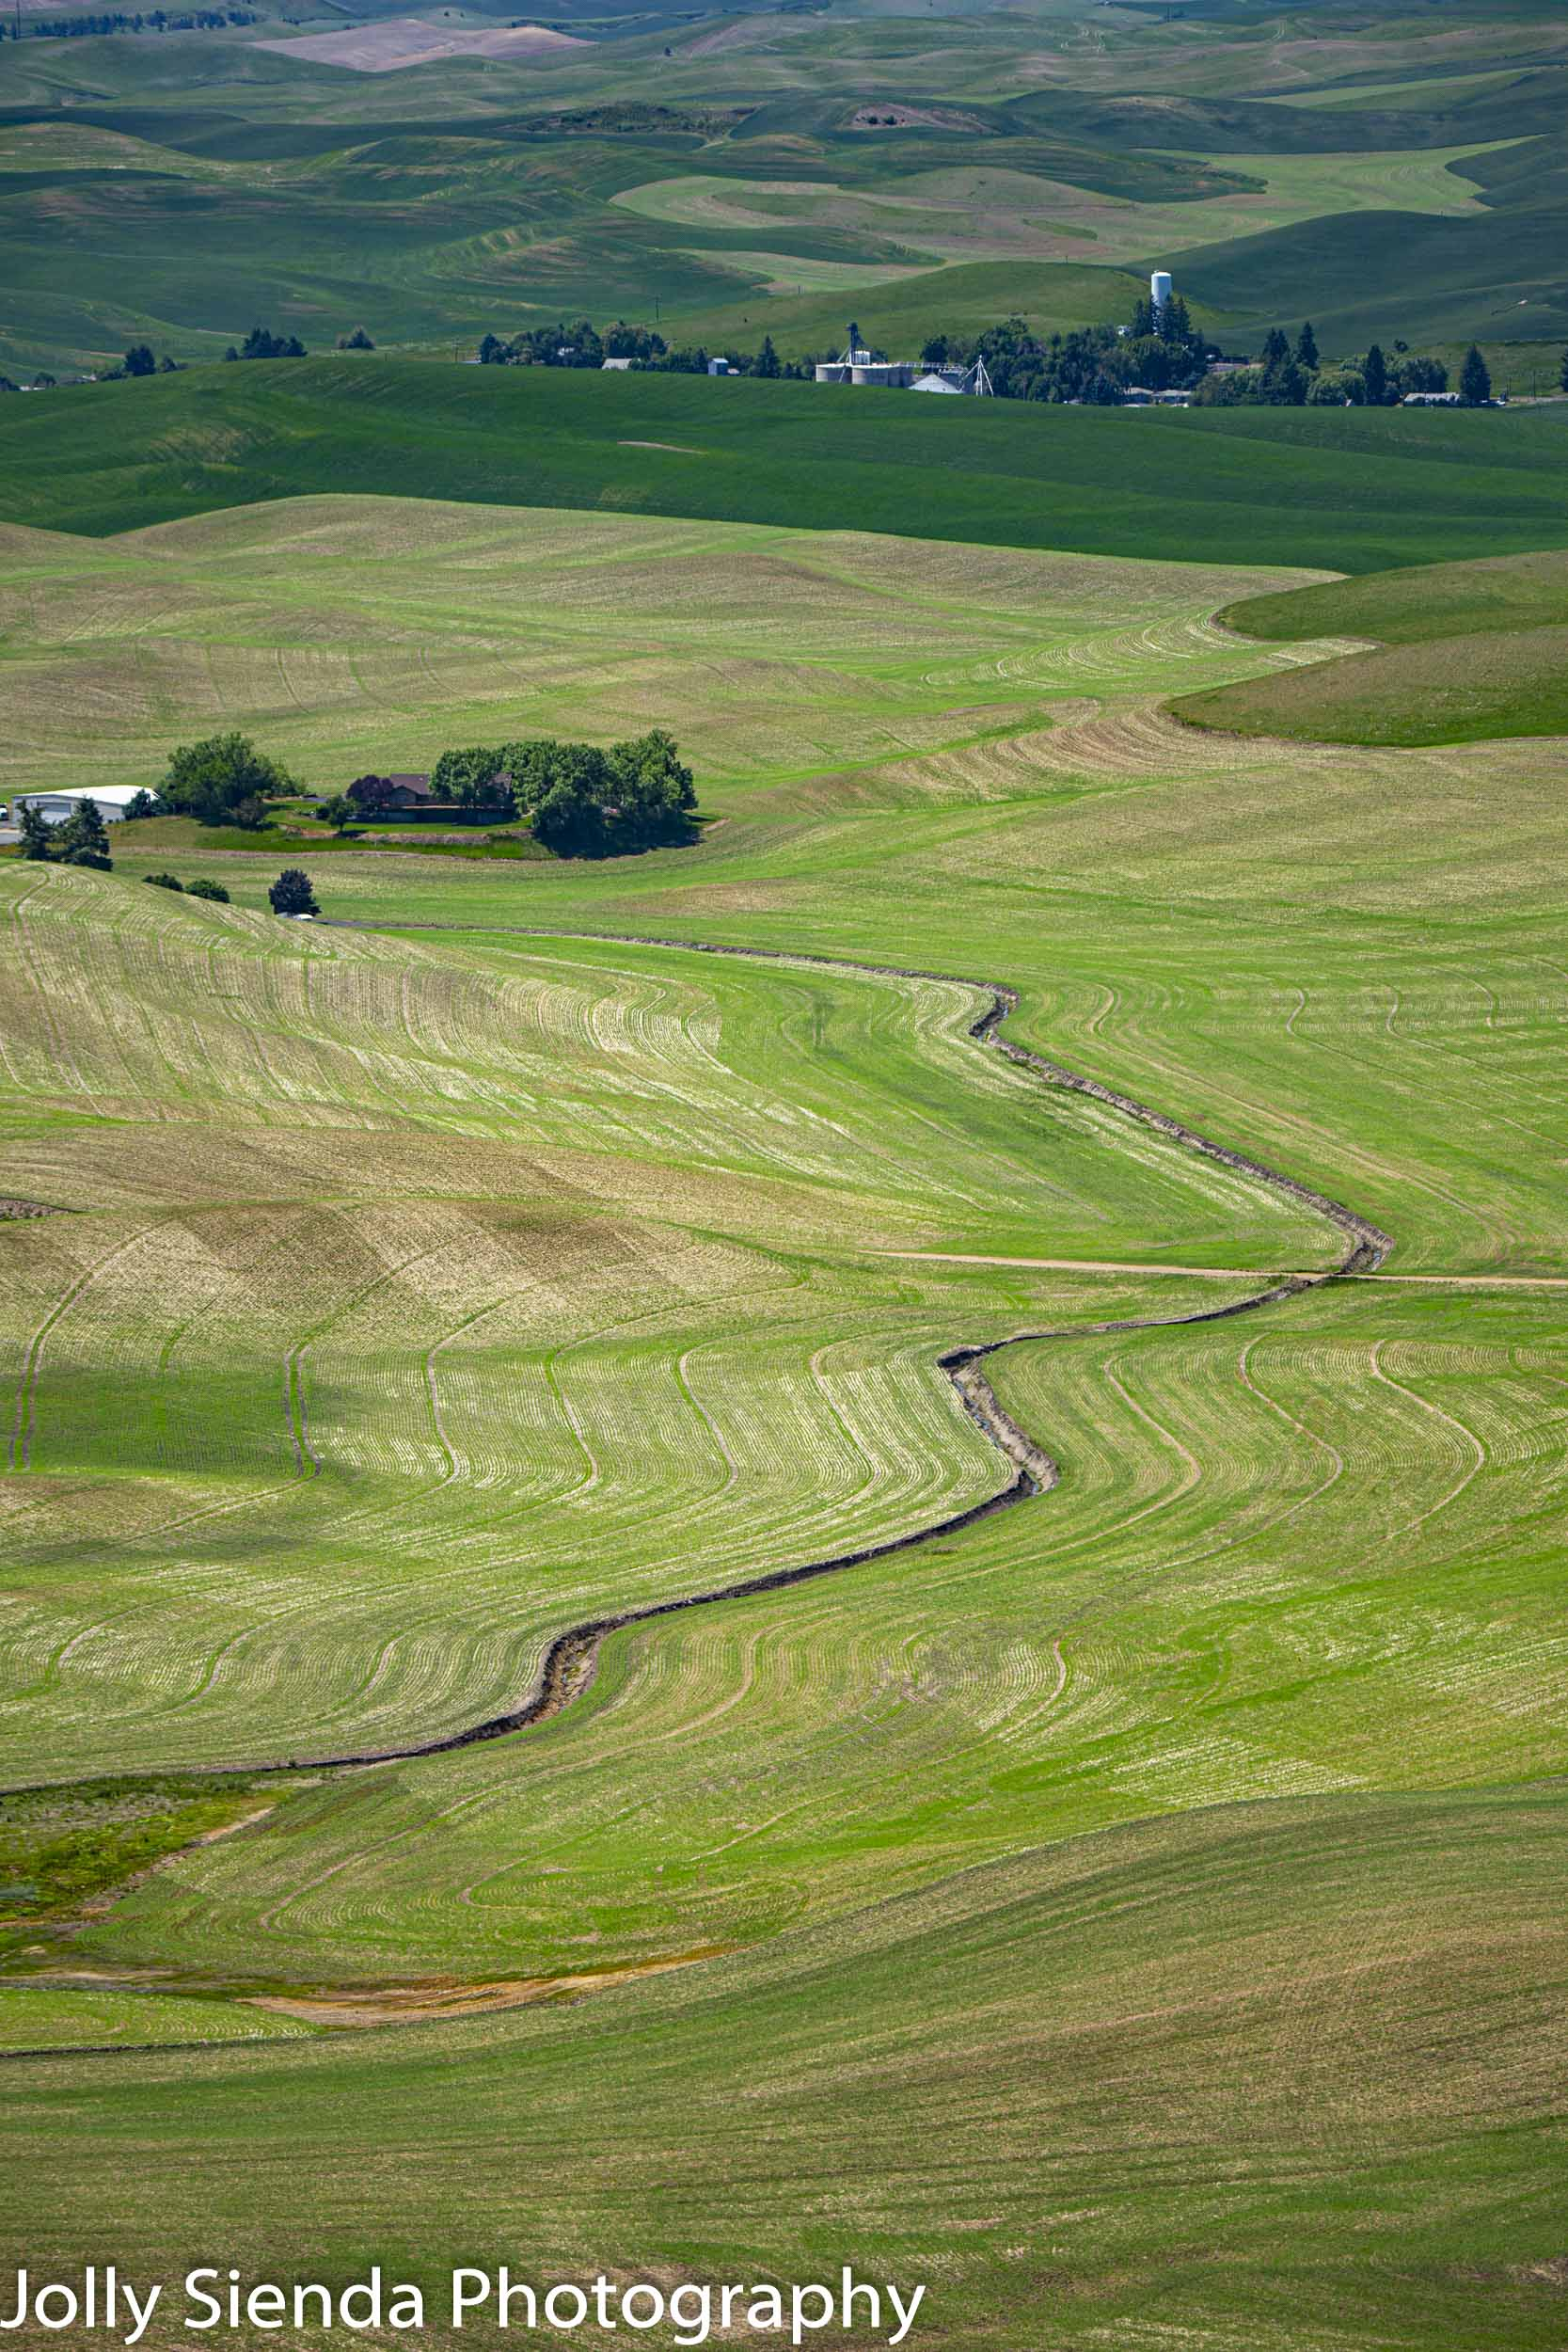 Palouse, curvy shades of green pastures